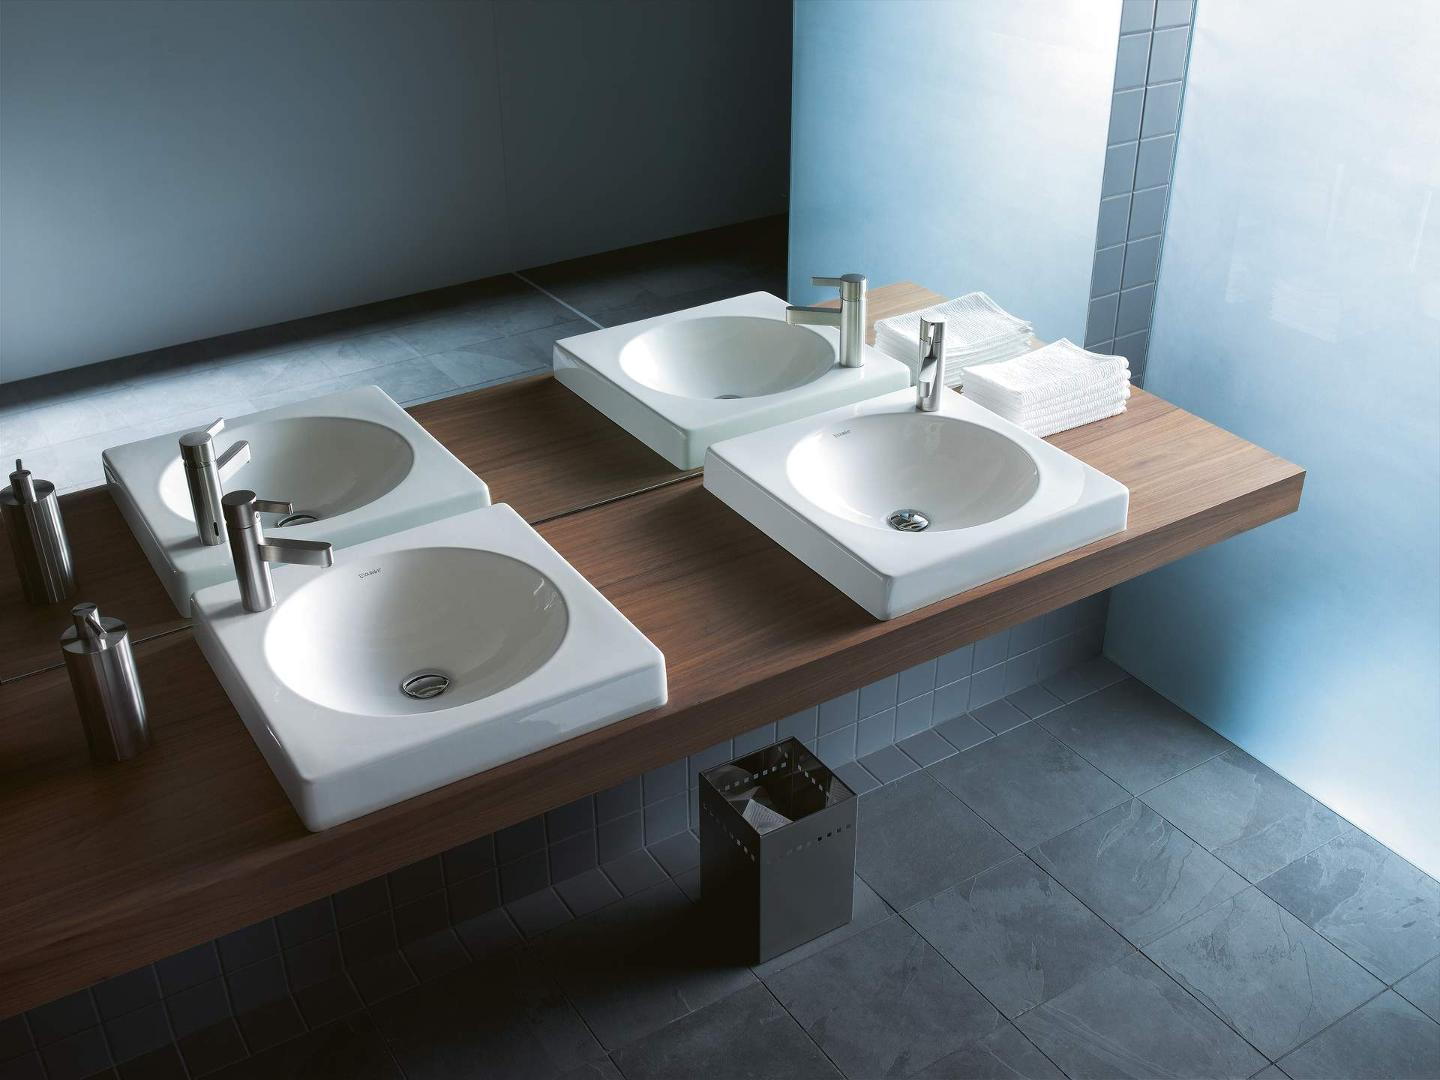 Architec duravit for Duravit architec sink